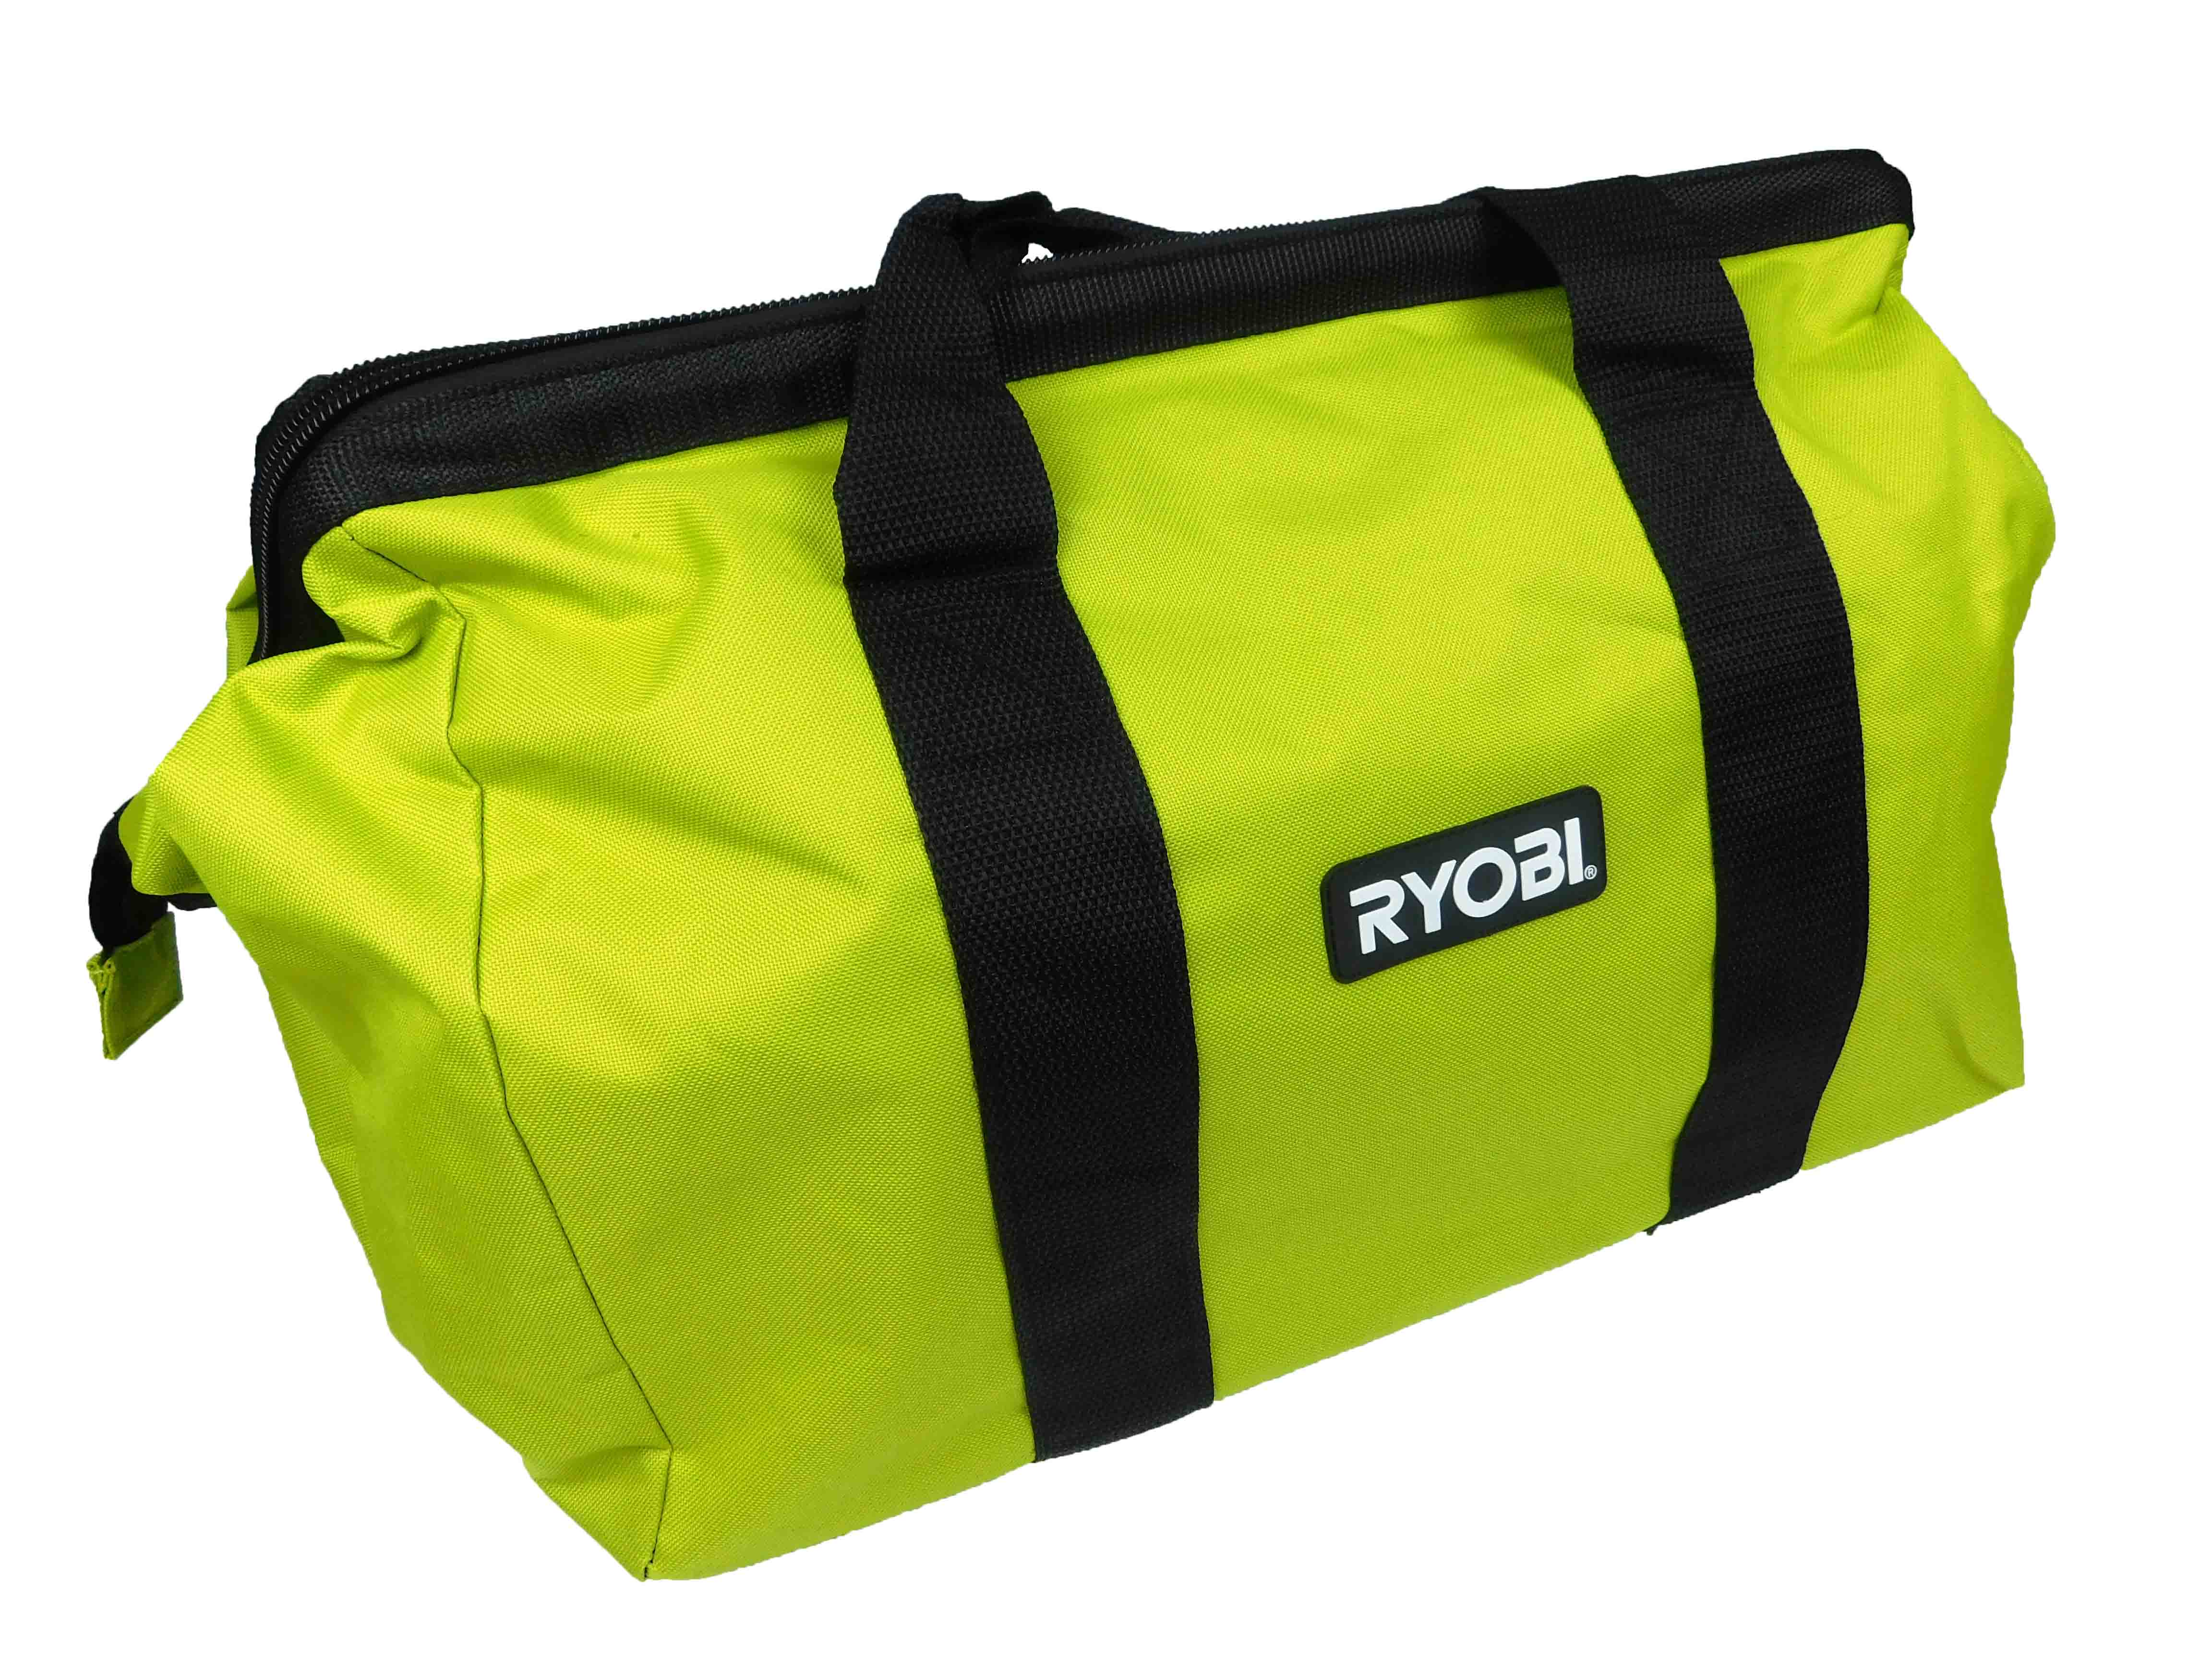 Ryobi-Contractors-Canvas-Wide-Mouth-Tool-Bag-image-4